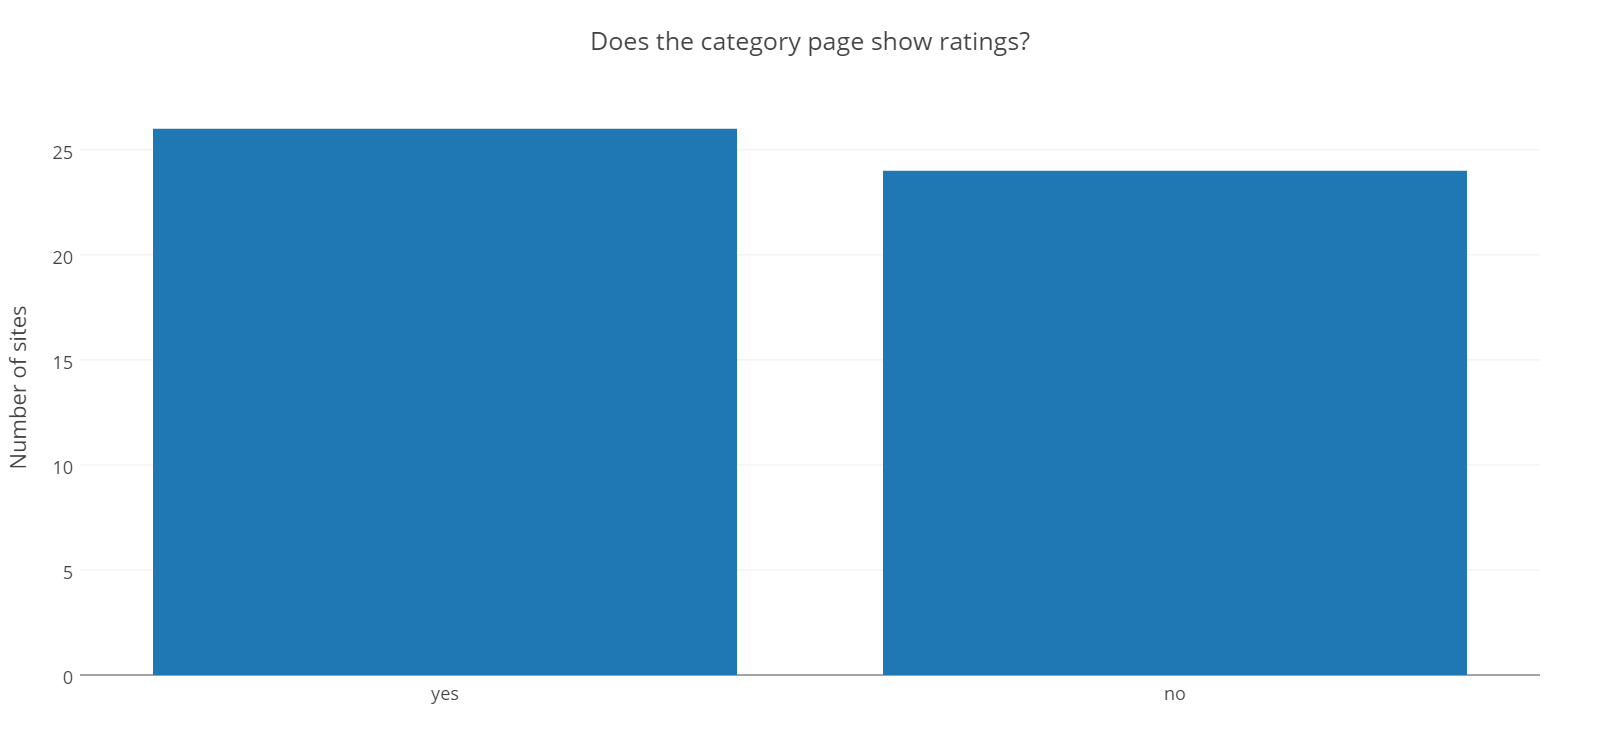 Does the category page show ratings